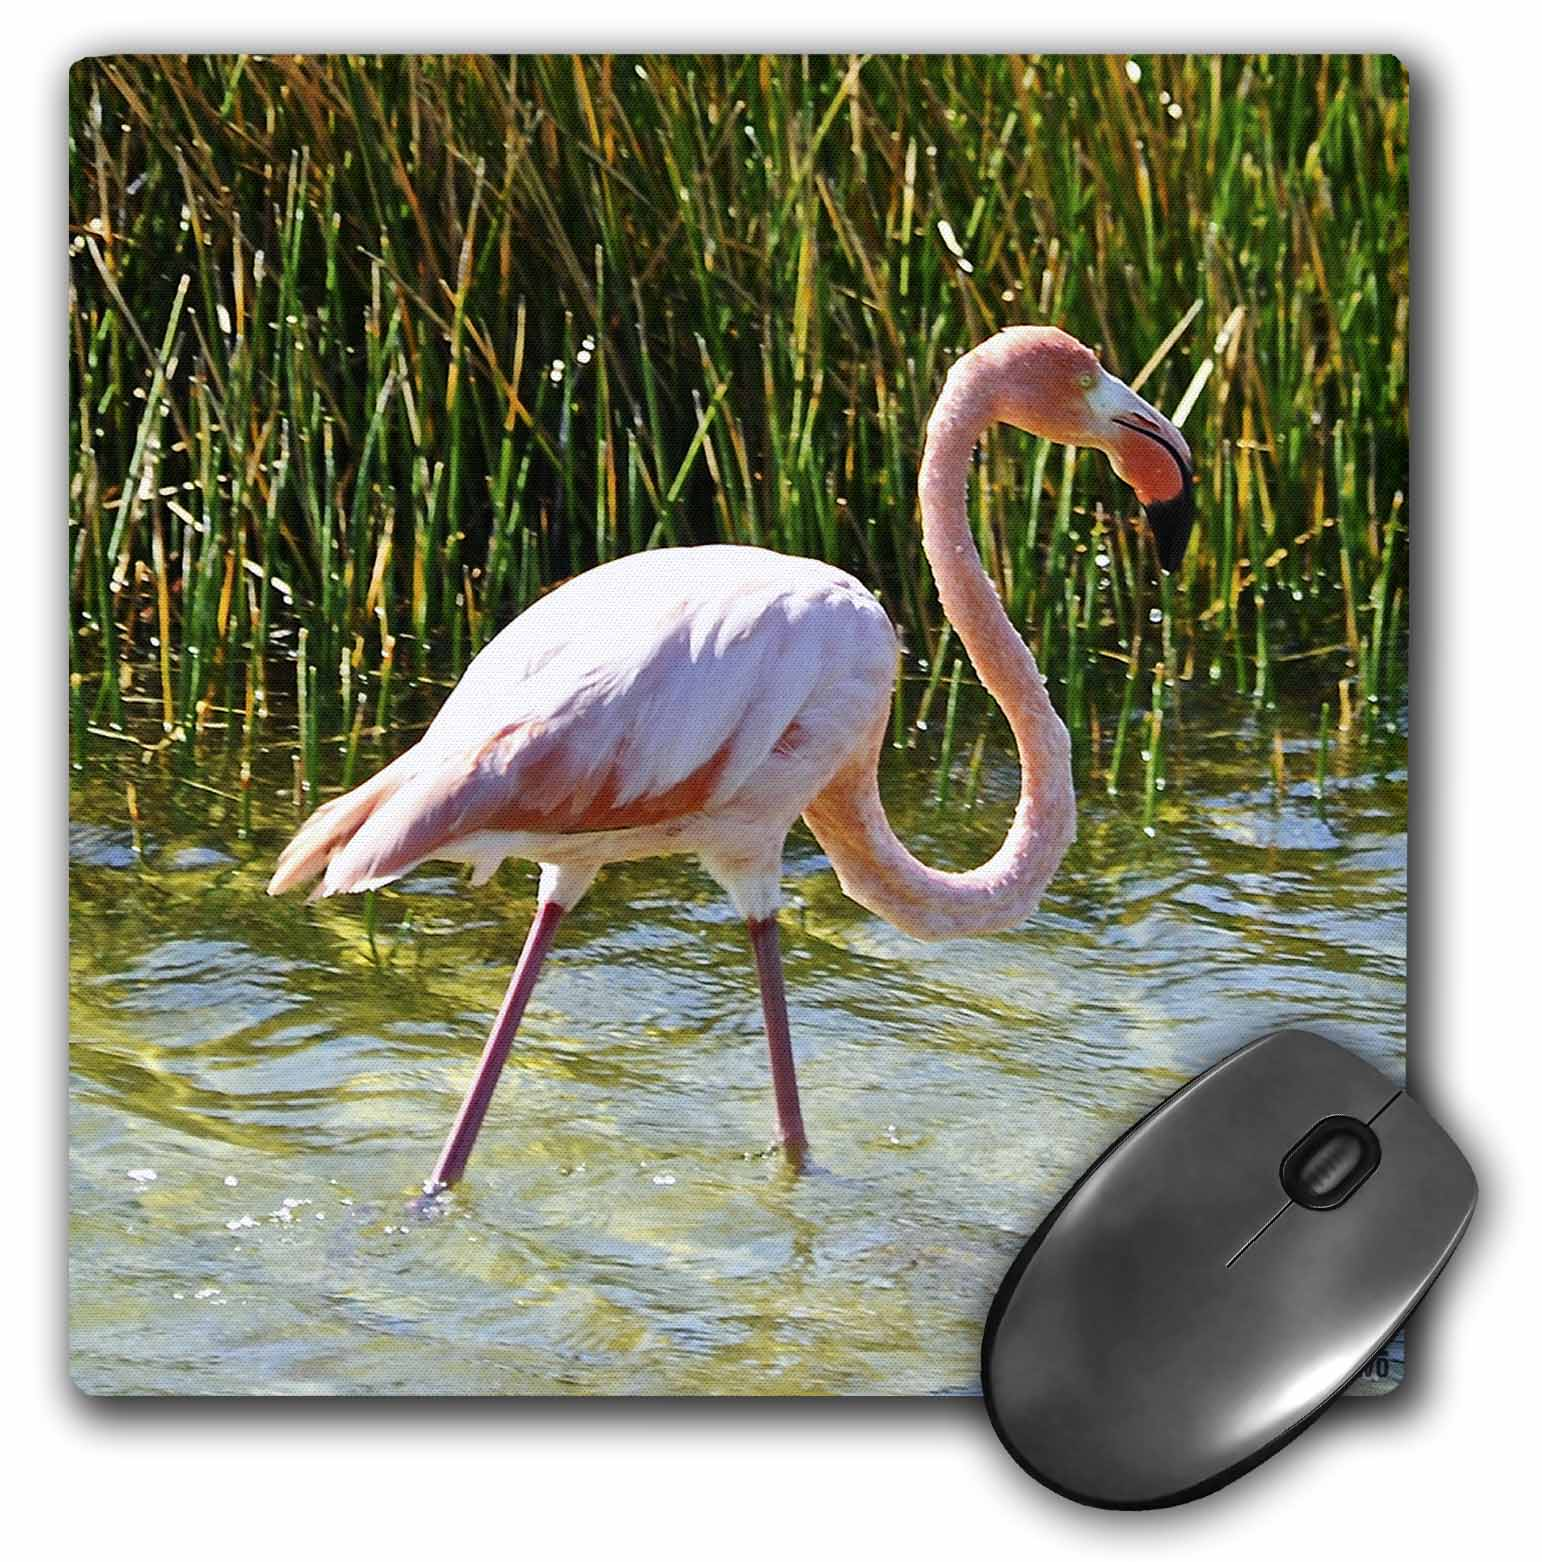 3dRose Caribbean pink flamingo,Phoenicopterus rubber,Punta Moreno Isabela Island Galapagos, Mouse Pad, 8 by 8 inches